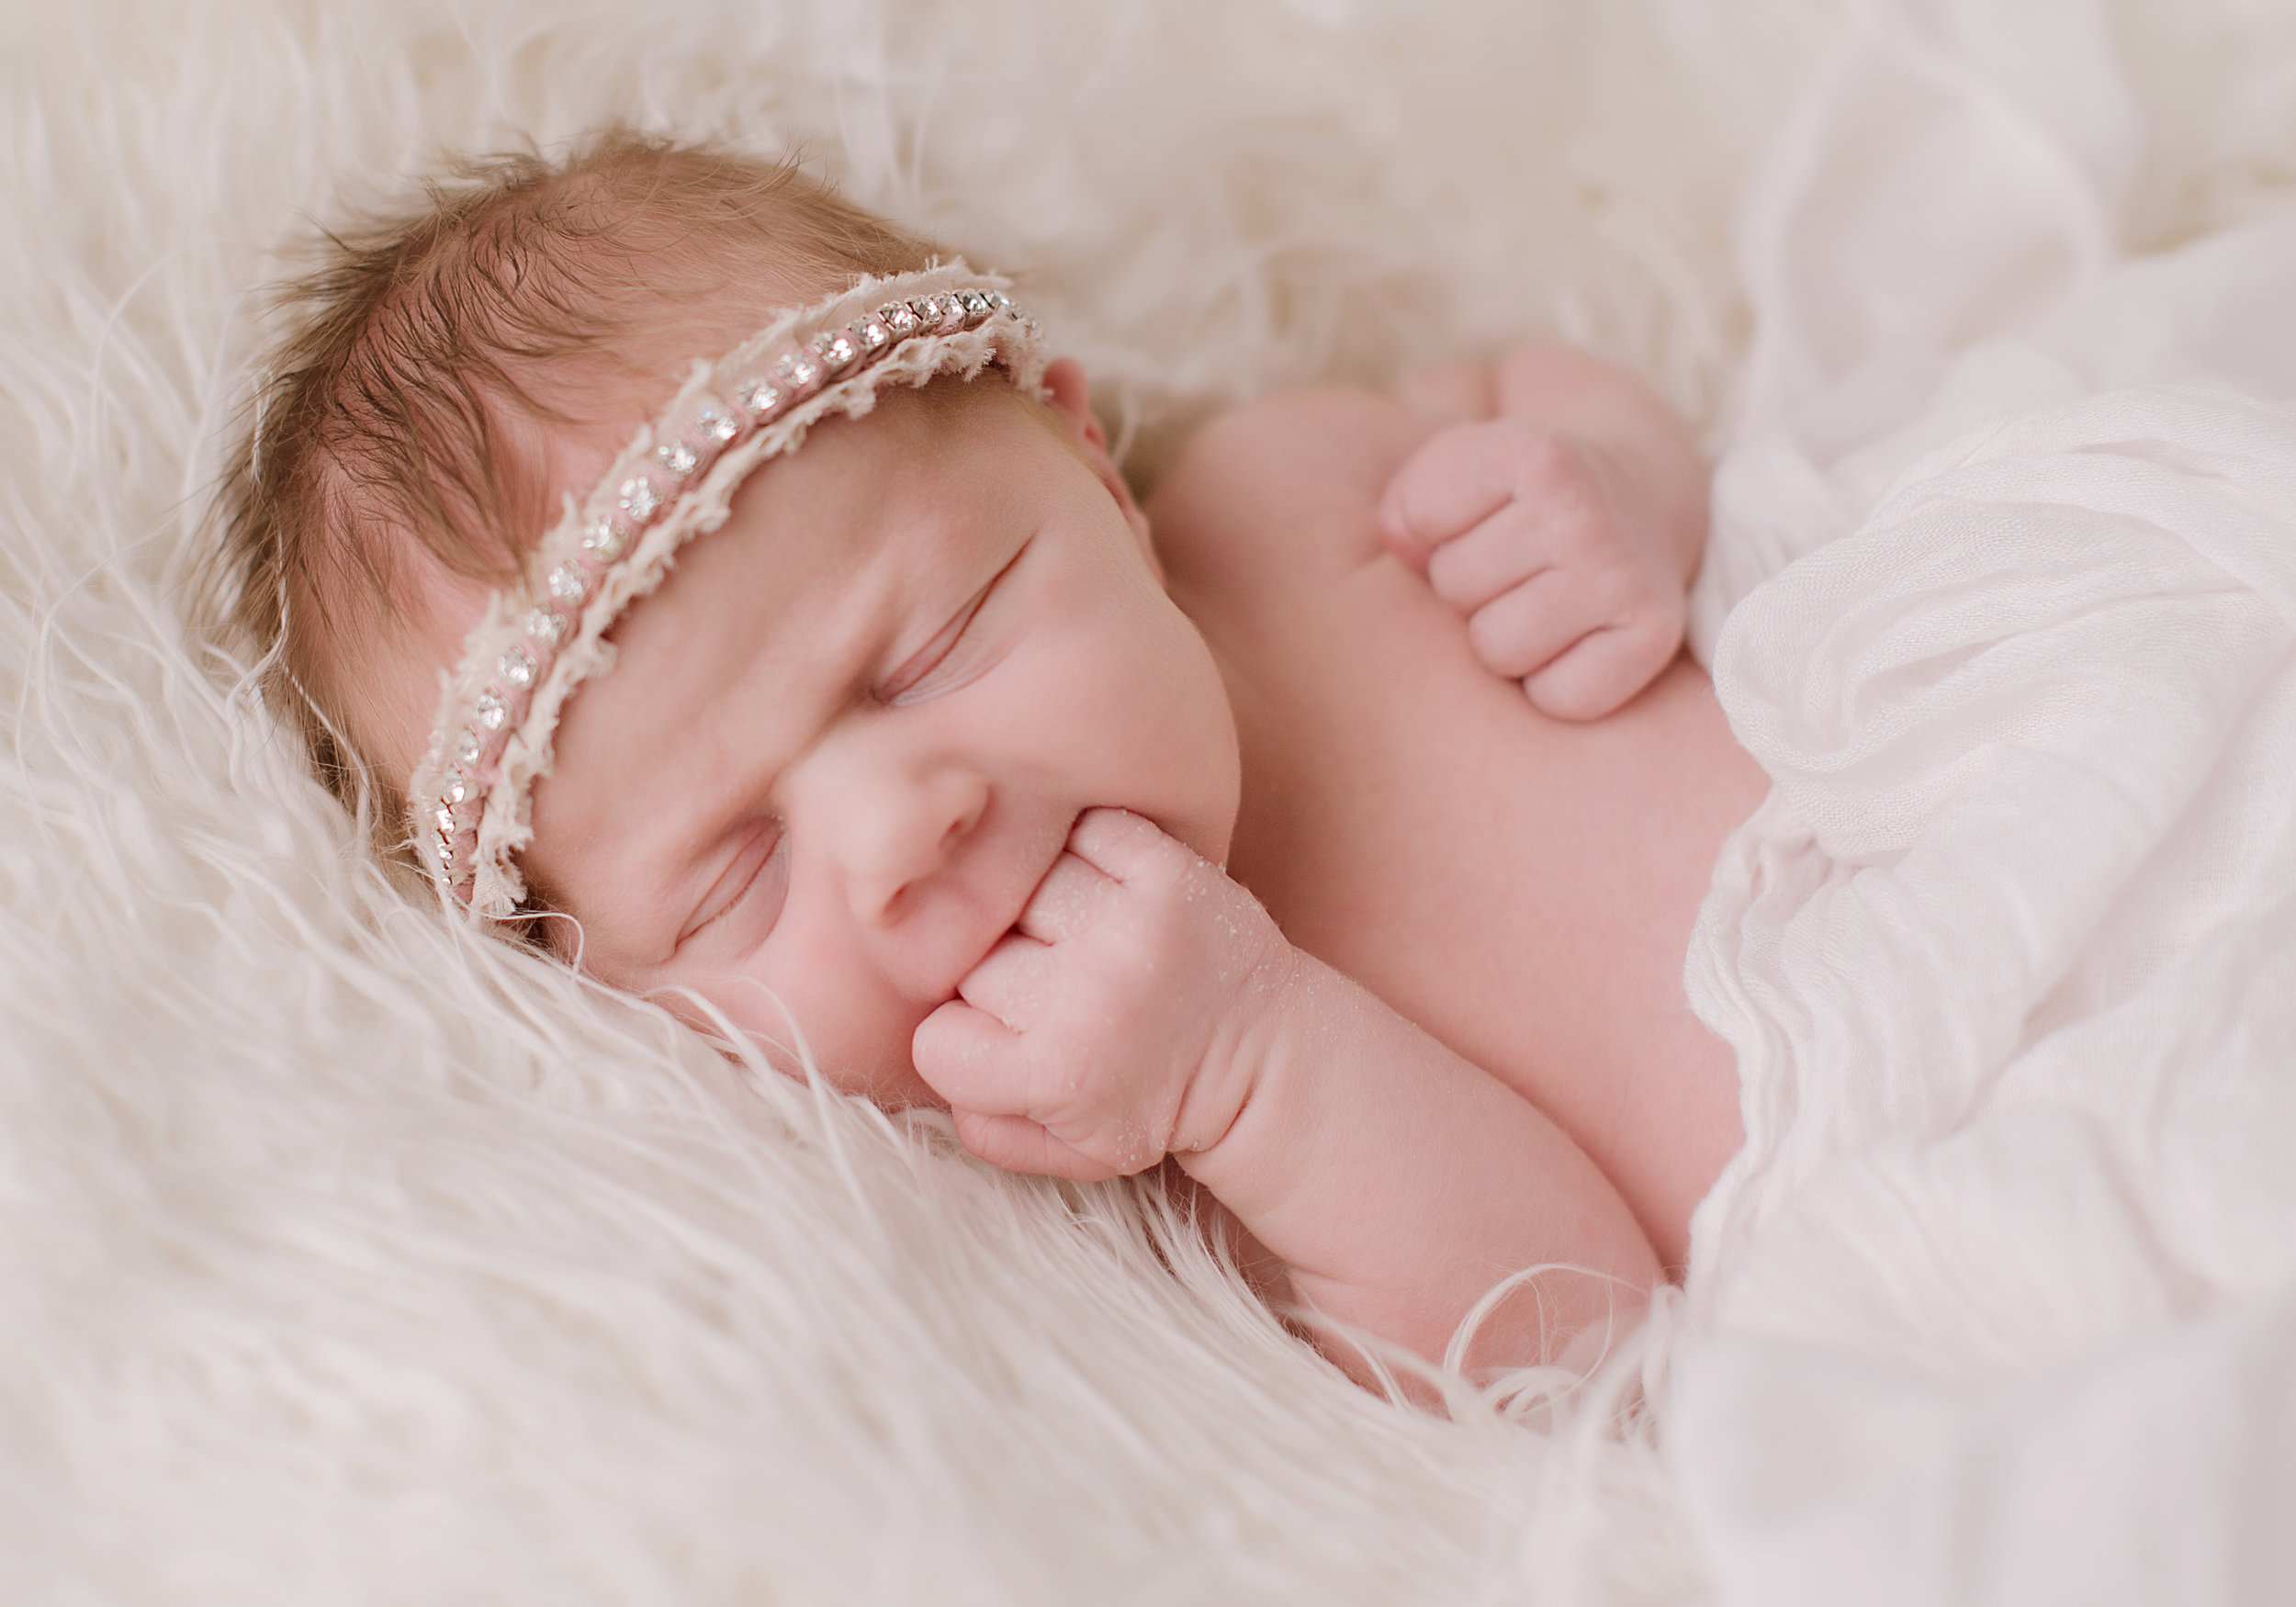 newborn-photographer-billings-montana-bozeman-baby-photography-4147.jpg